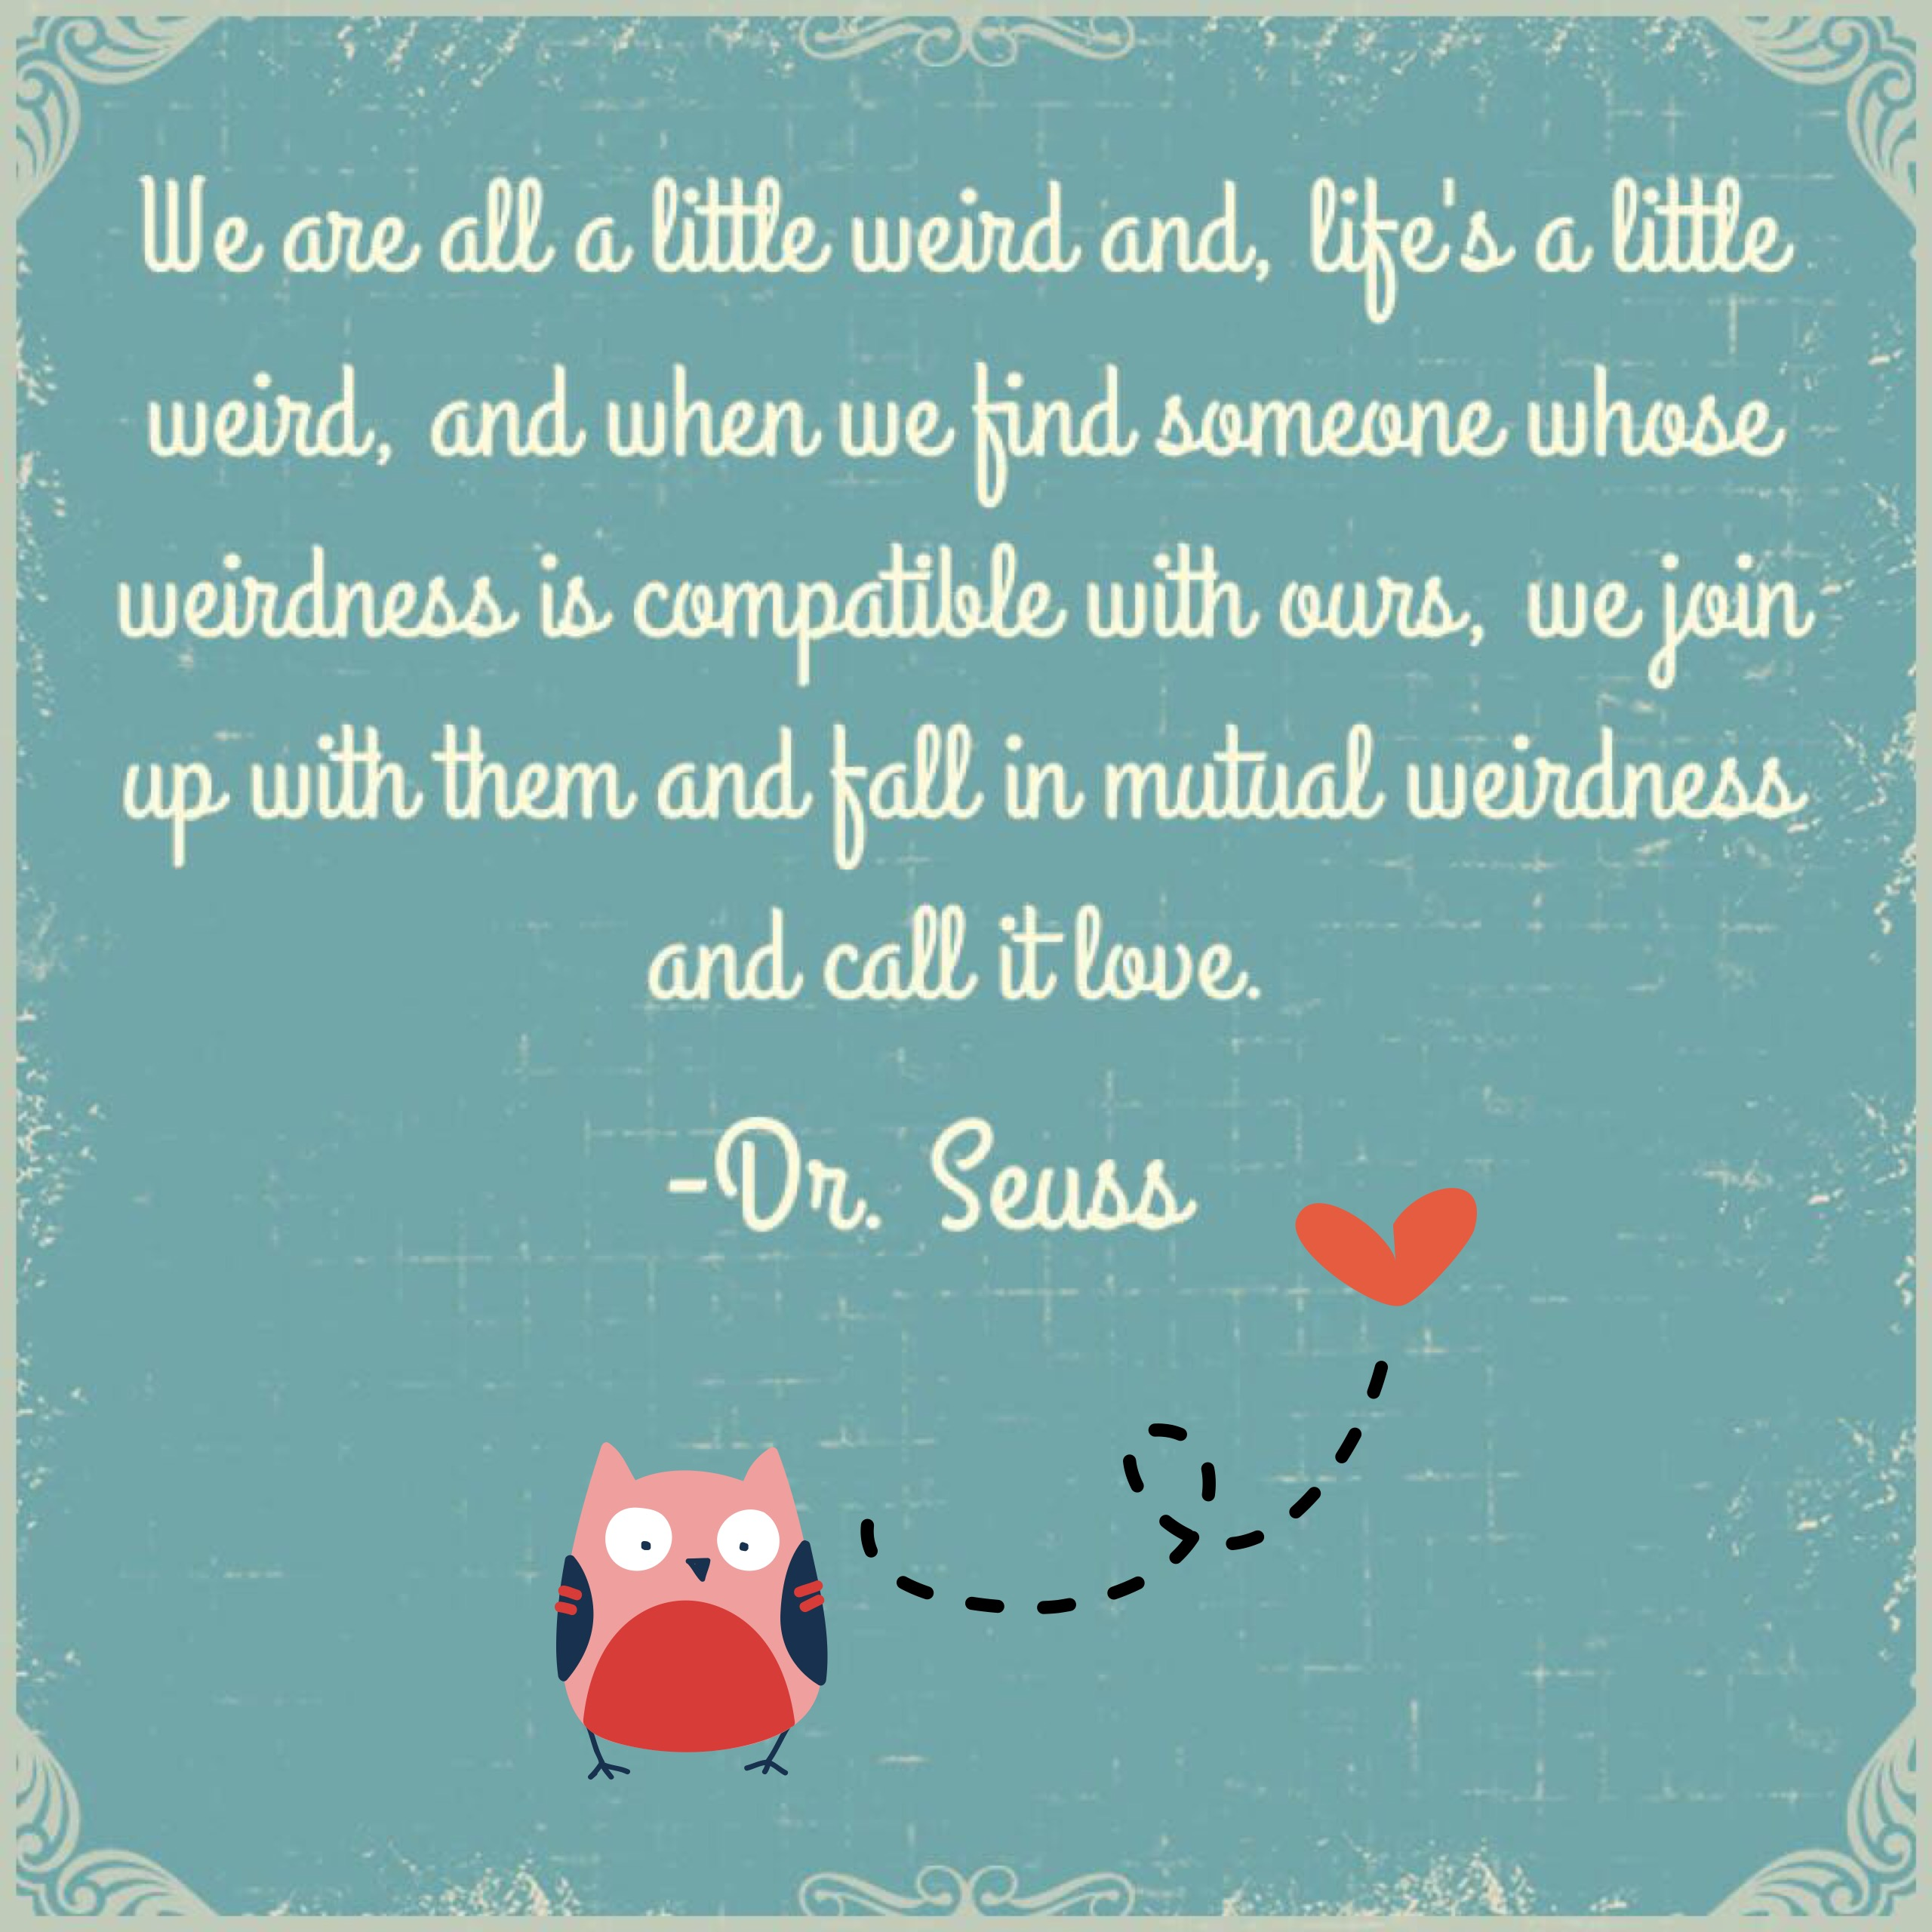 Dr Seuss Weird Love Quote Poster Fall In Mutual Weirdness And Call It Love…  The Lone Panda